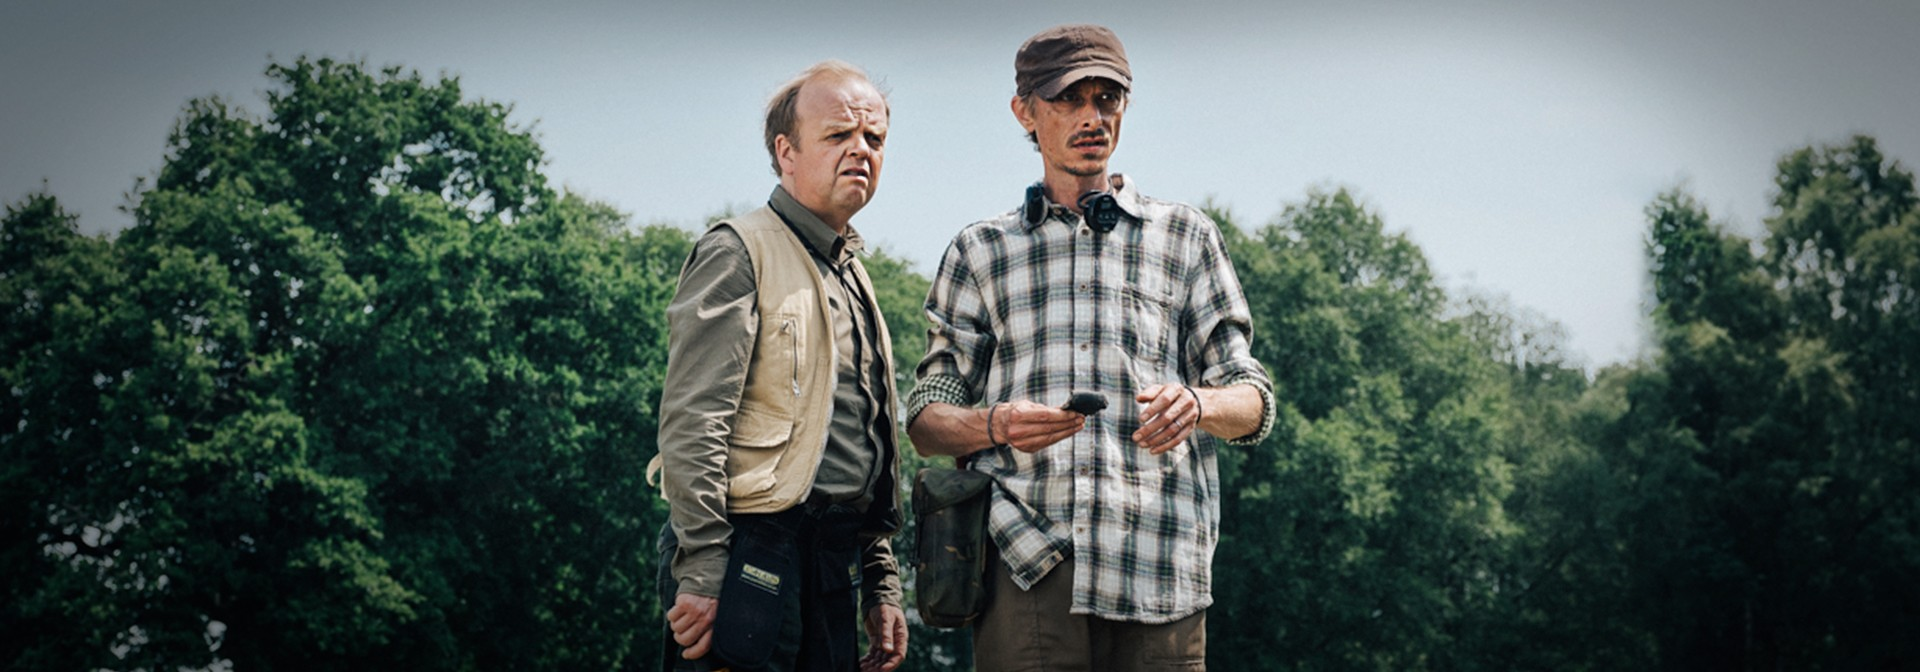 Detectorists - GloboPlay